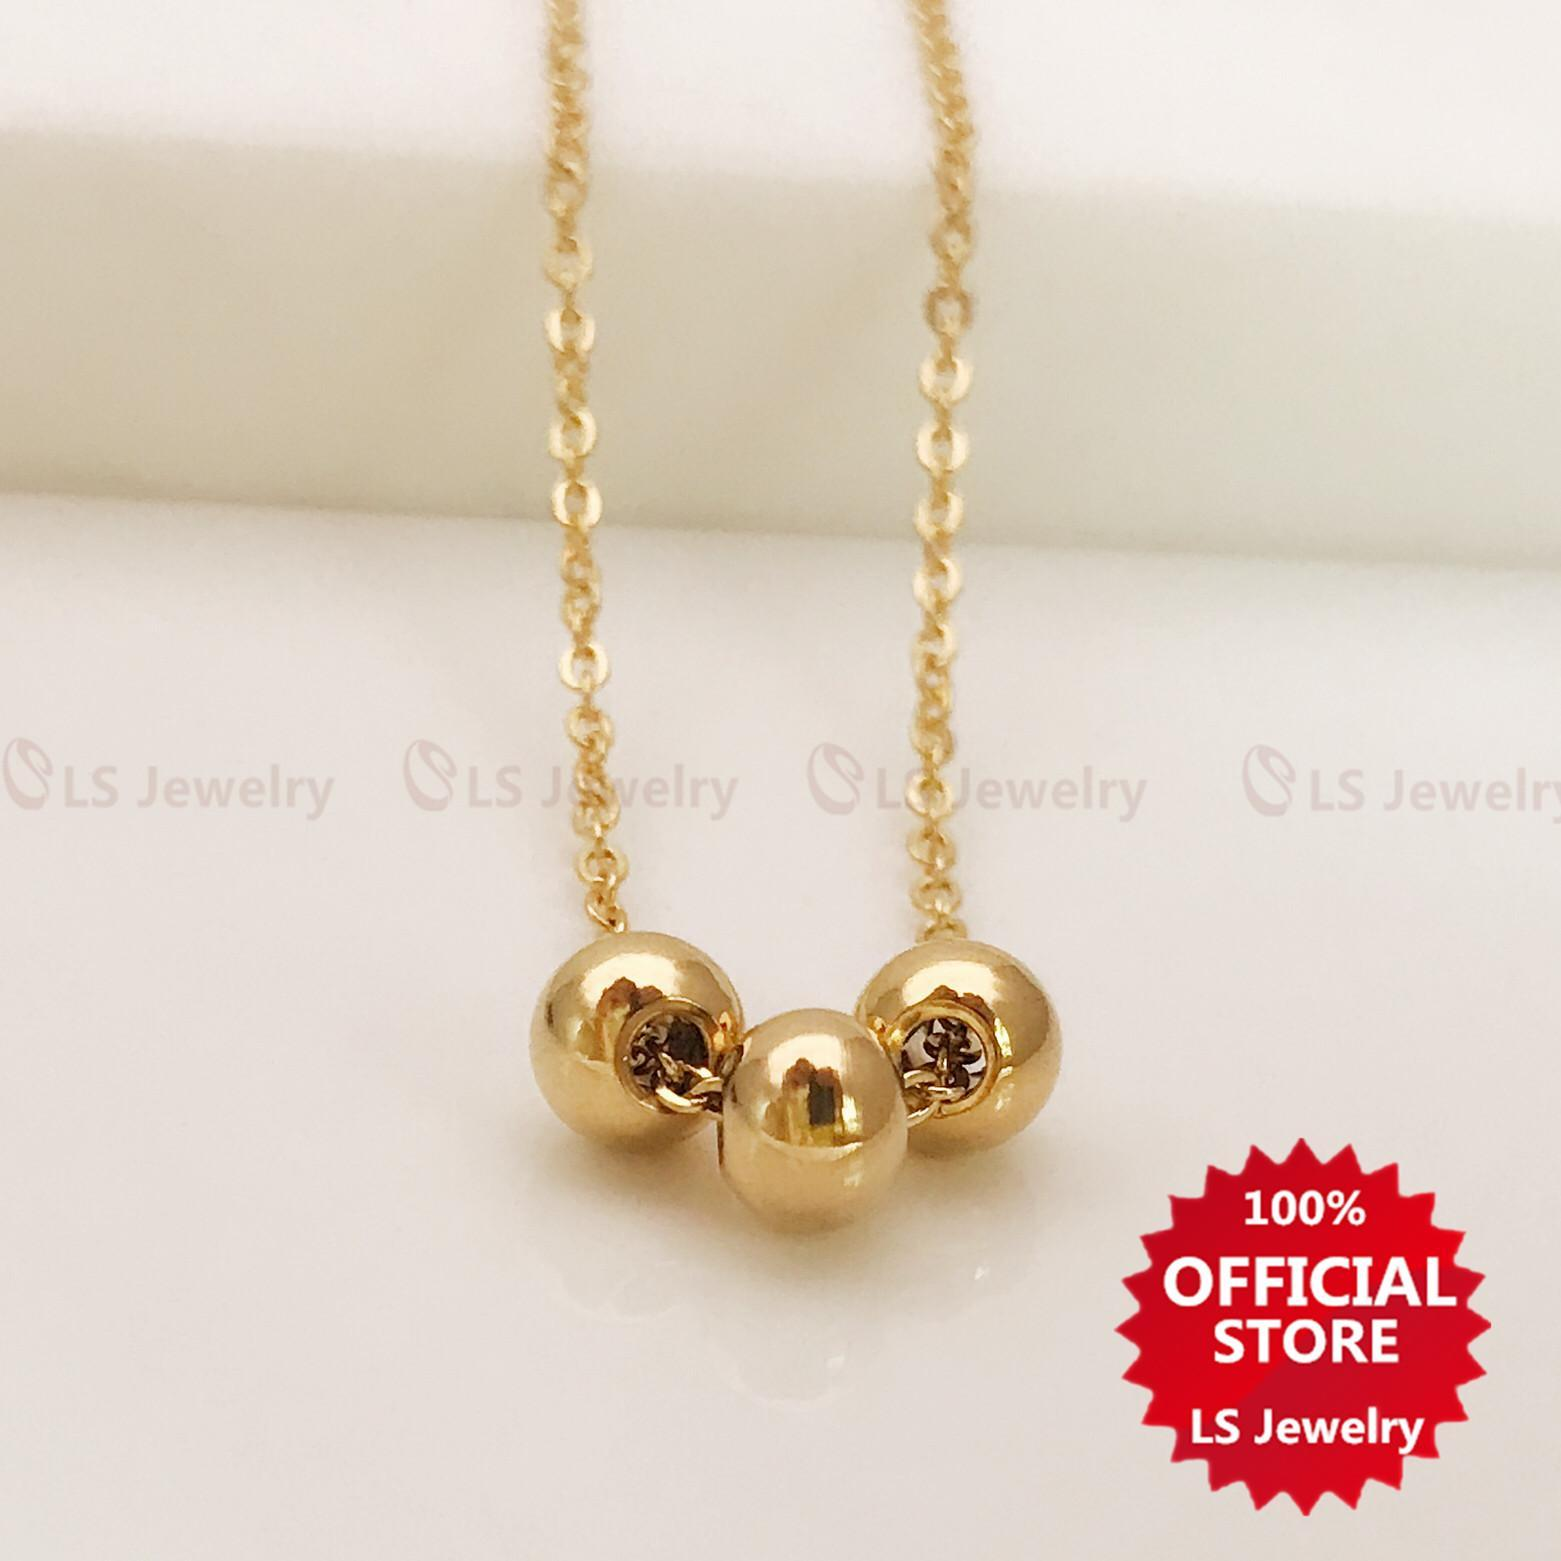 a114af339a3 LS jewelry Fashionable 14K Stainless gold plated Necklace for women N0040